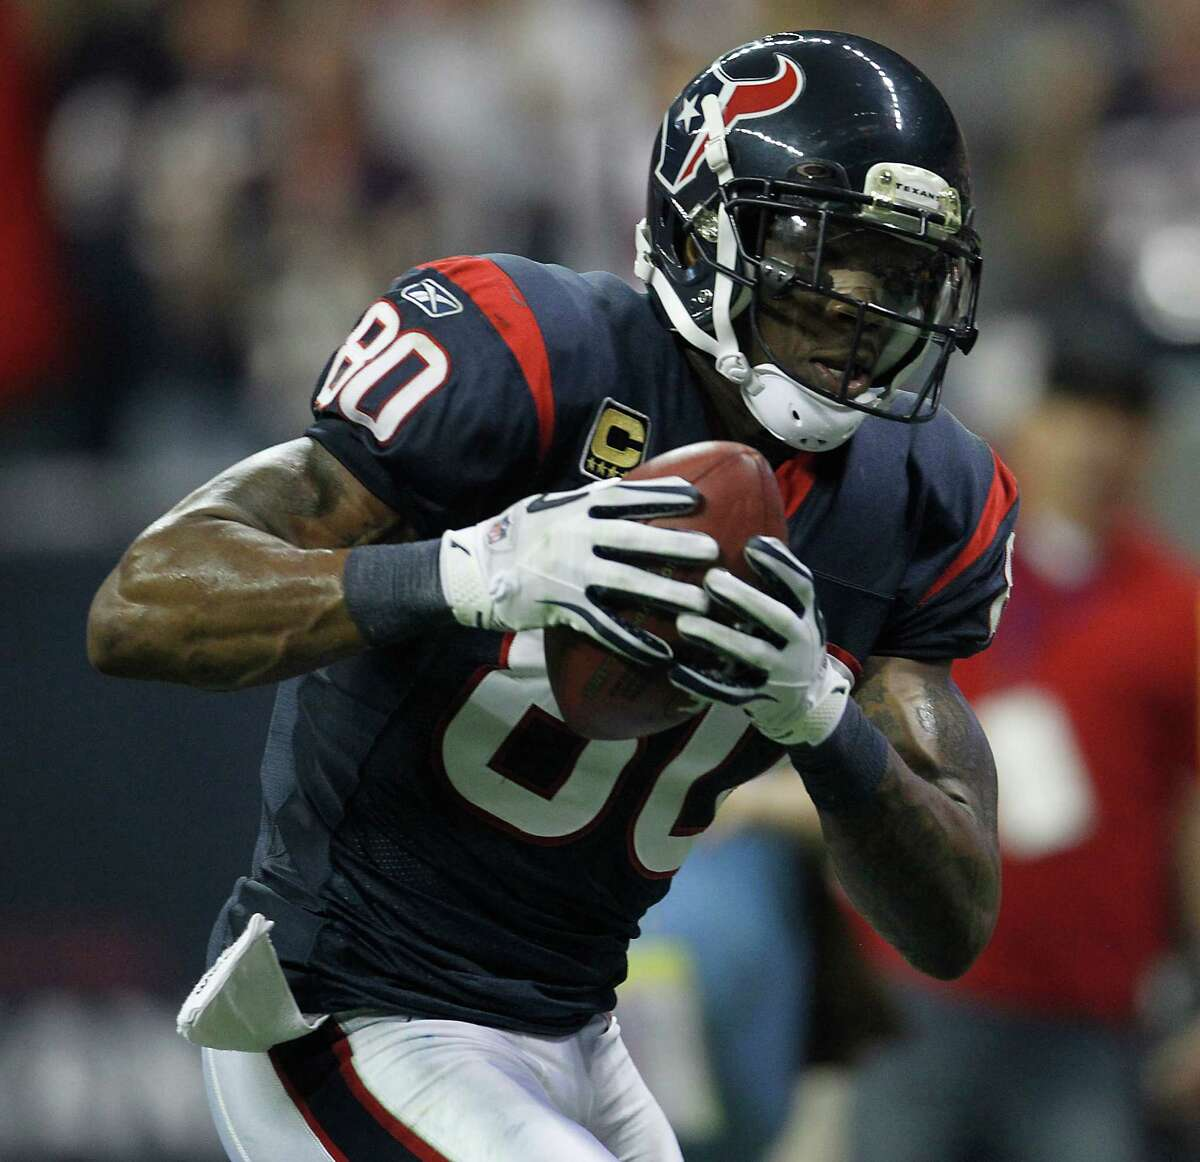 Andre Johnson - Regarded as the greatest Texans player, Johnson returned to Houston on April 19, 2017 to sign a one-day contract in order to retire as a Texan. Johnson spent the last two seasons of his career with the Colts and Titans, but his heart always will be in Houston. Keep clicking to see Houston's most beloved sports figures.